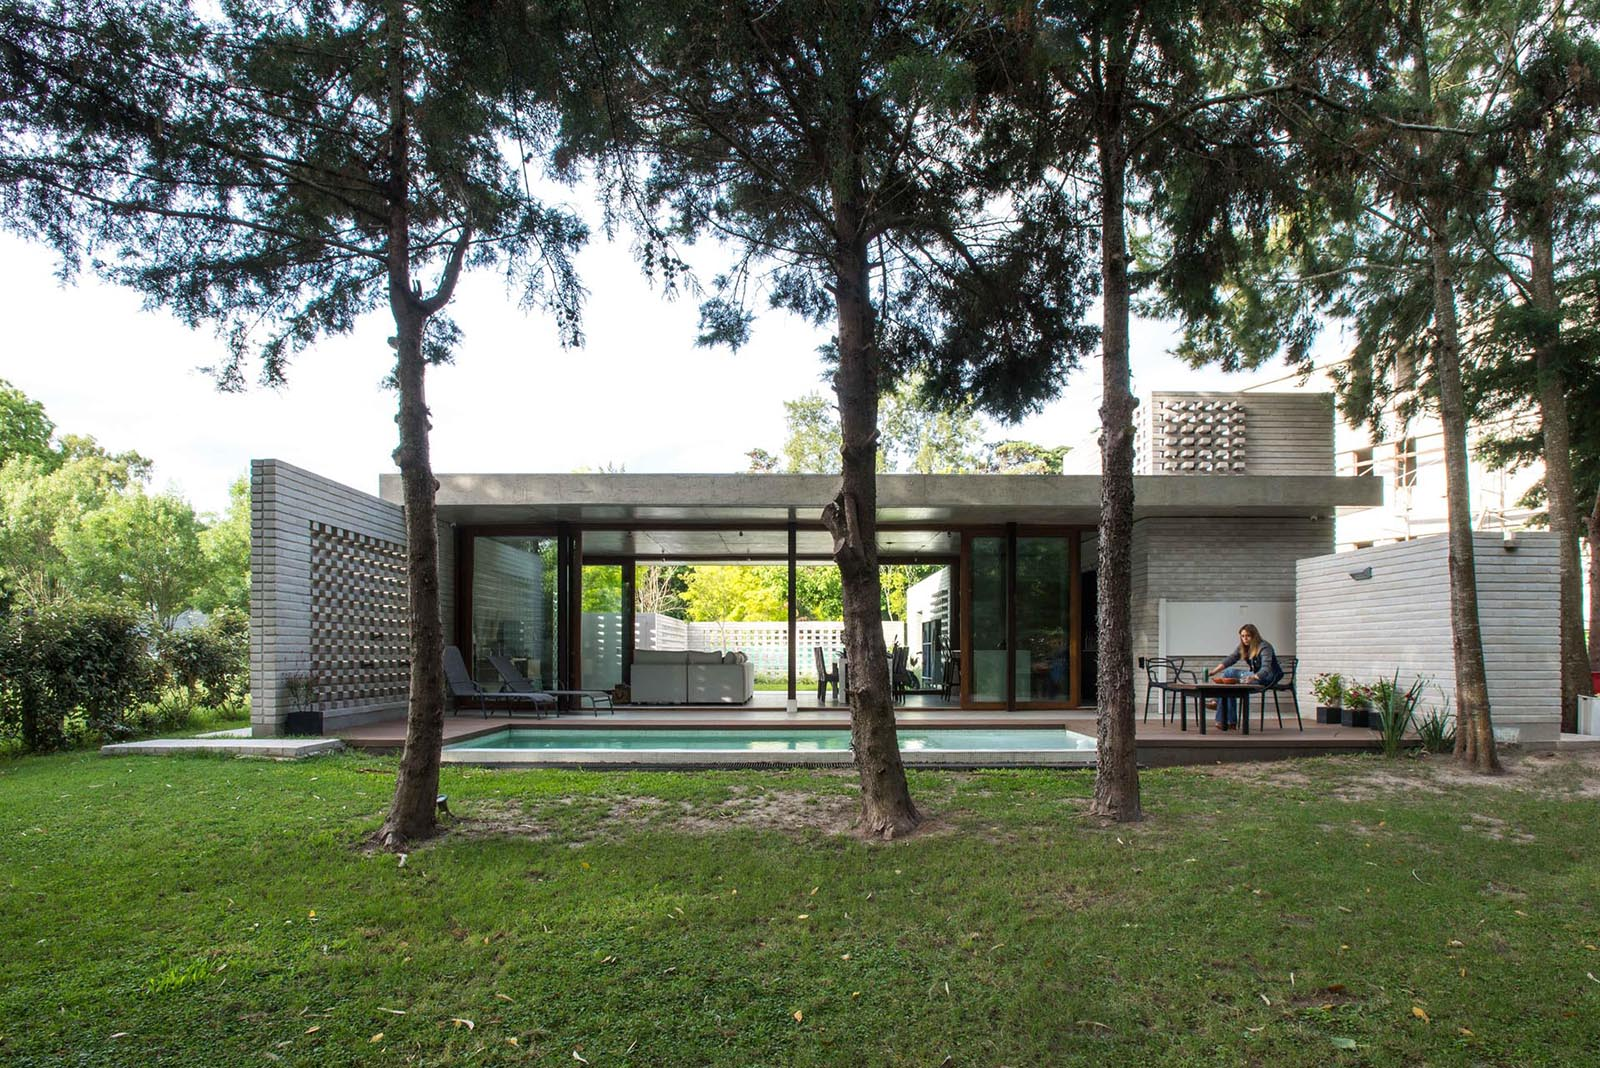 A modern concrete home with a swimming pool and glass walls.